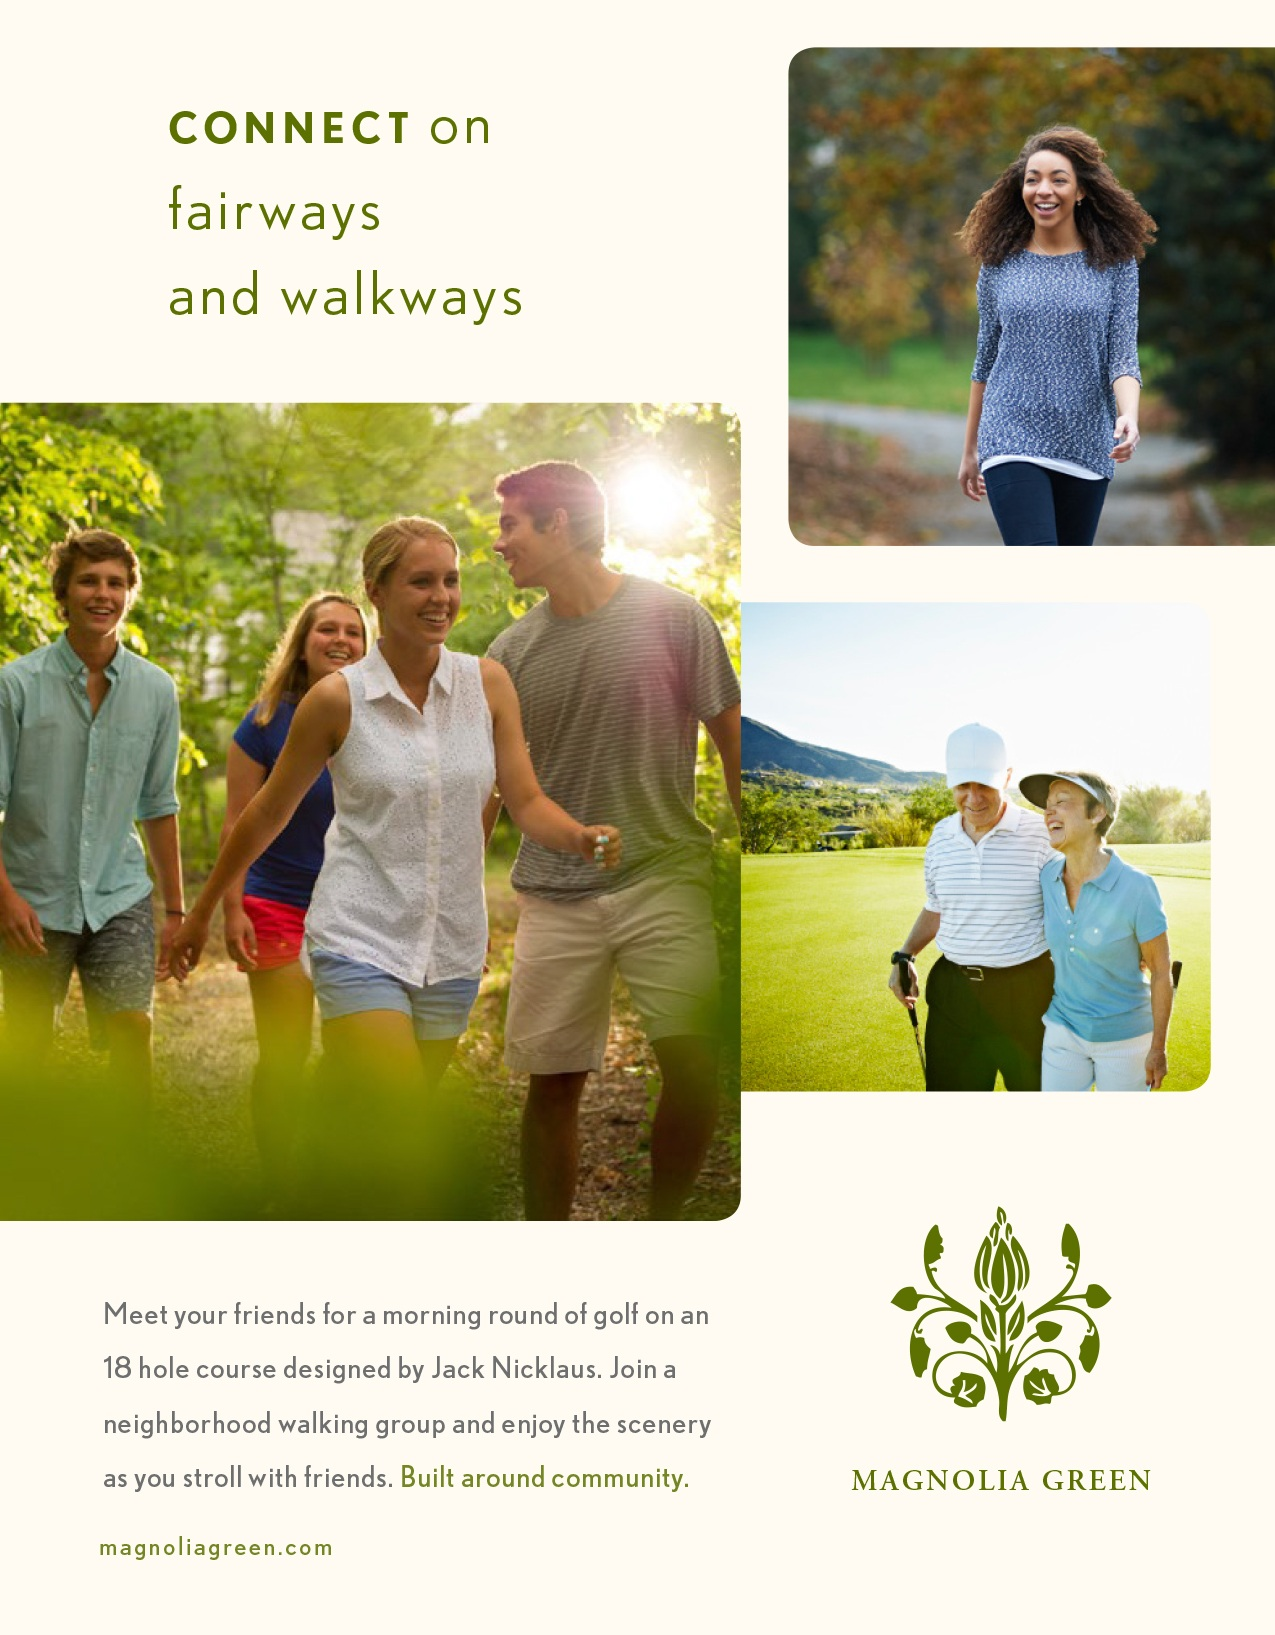 Connect on fairways and walkways - Meet your friends for a morning round of golf on an 18 hole course designed by Jack Nicklaus. Join a neighborhood walking group and enjoy the scenery as you stroll with friends. Built around community.